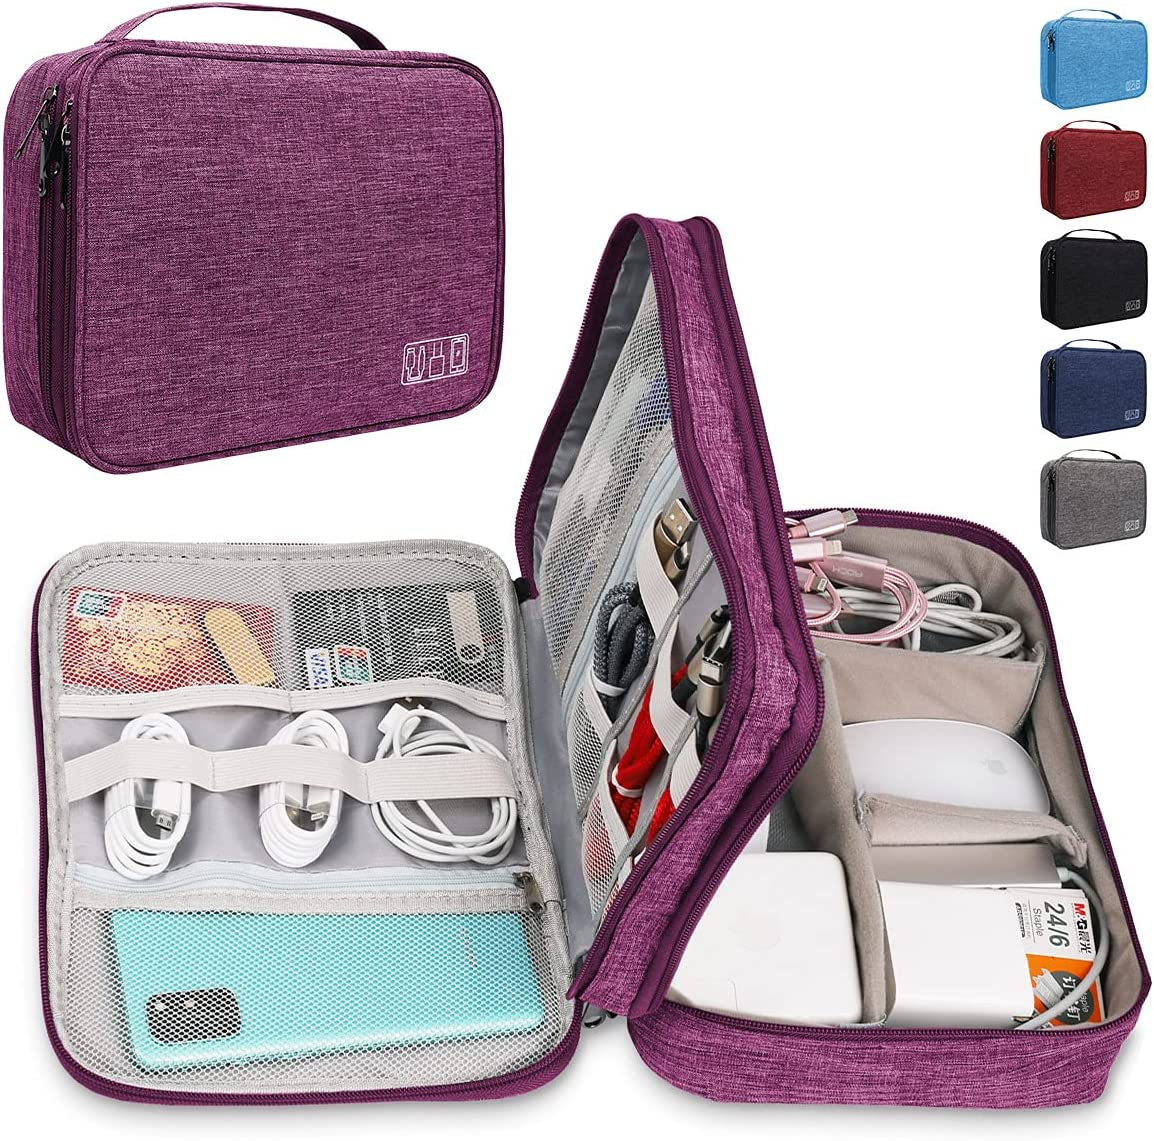 Mektron Cord All stores are Cheap mail order sales sold Organizer Bag Universal Travel Cas Cable